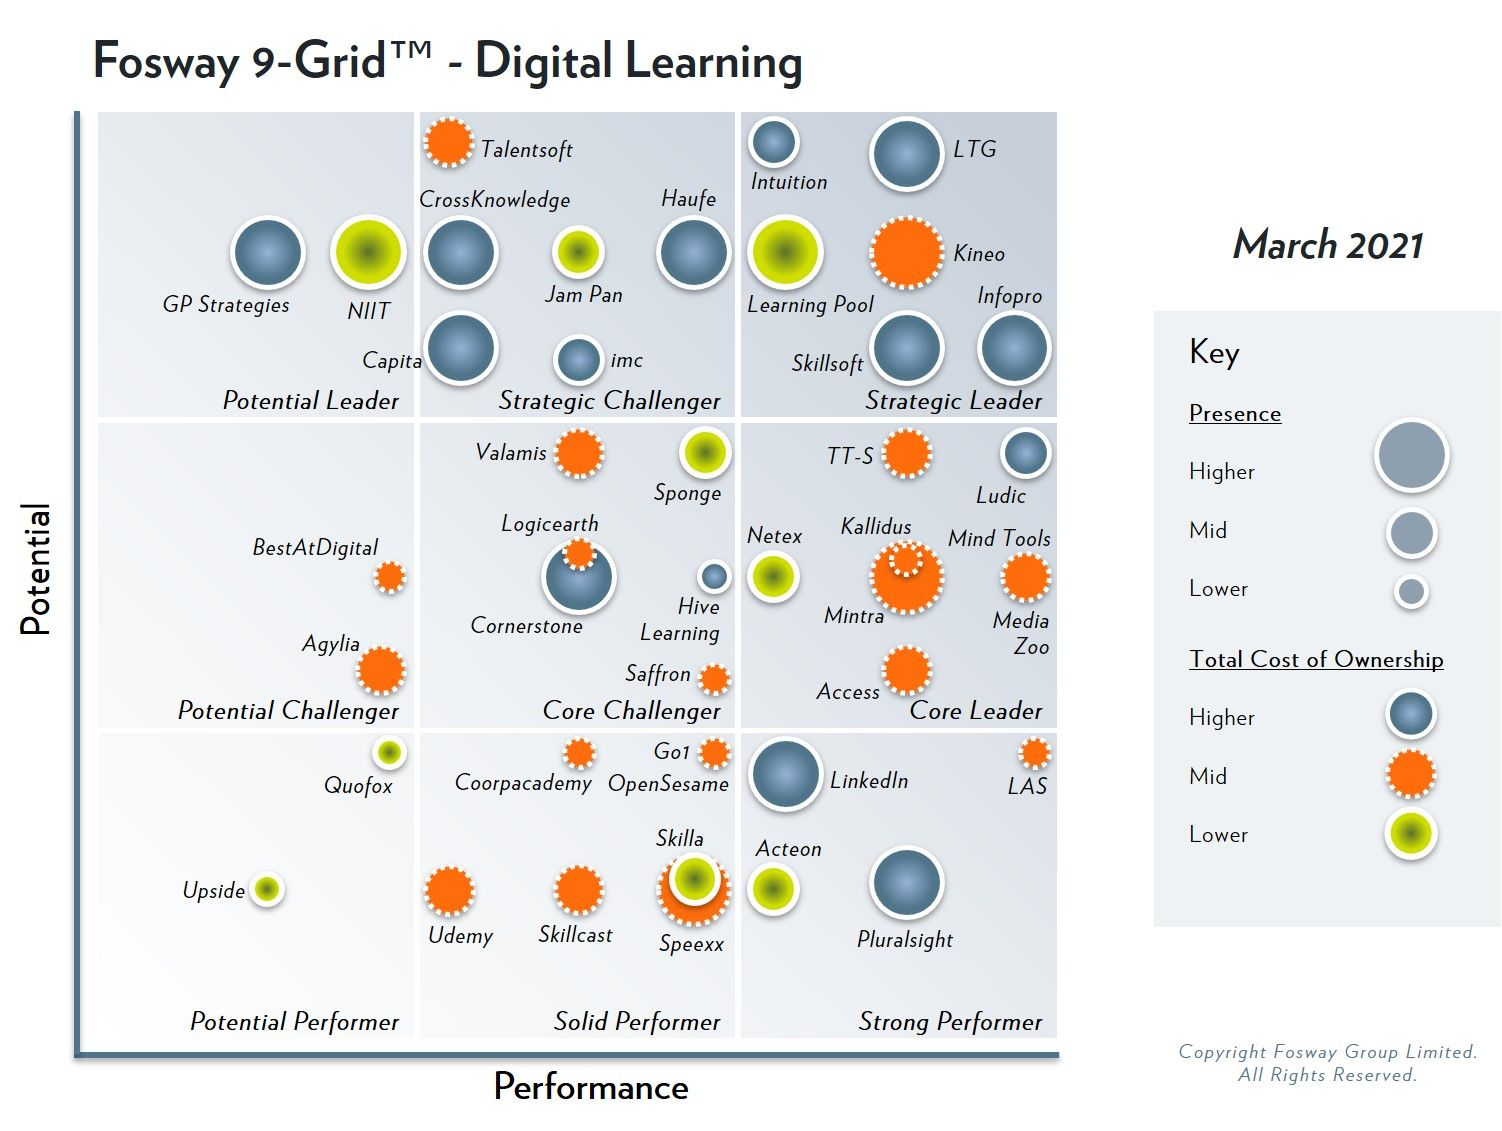 March 2021 Fosway 9-Grid for Digital Learning featuring Learning Technologies Group